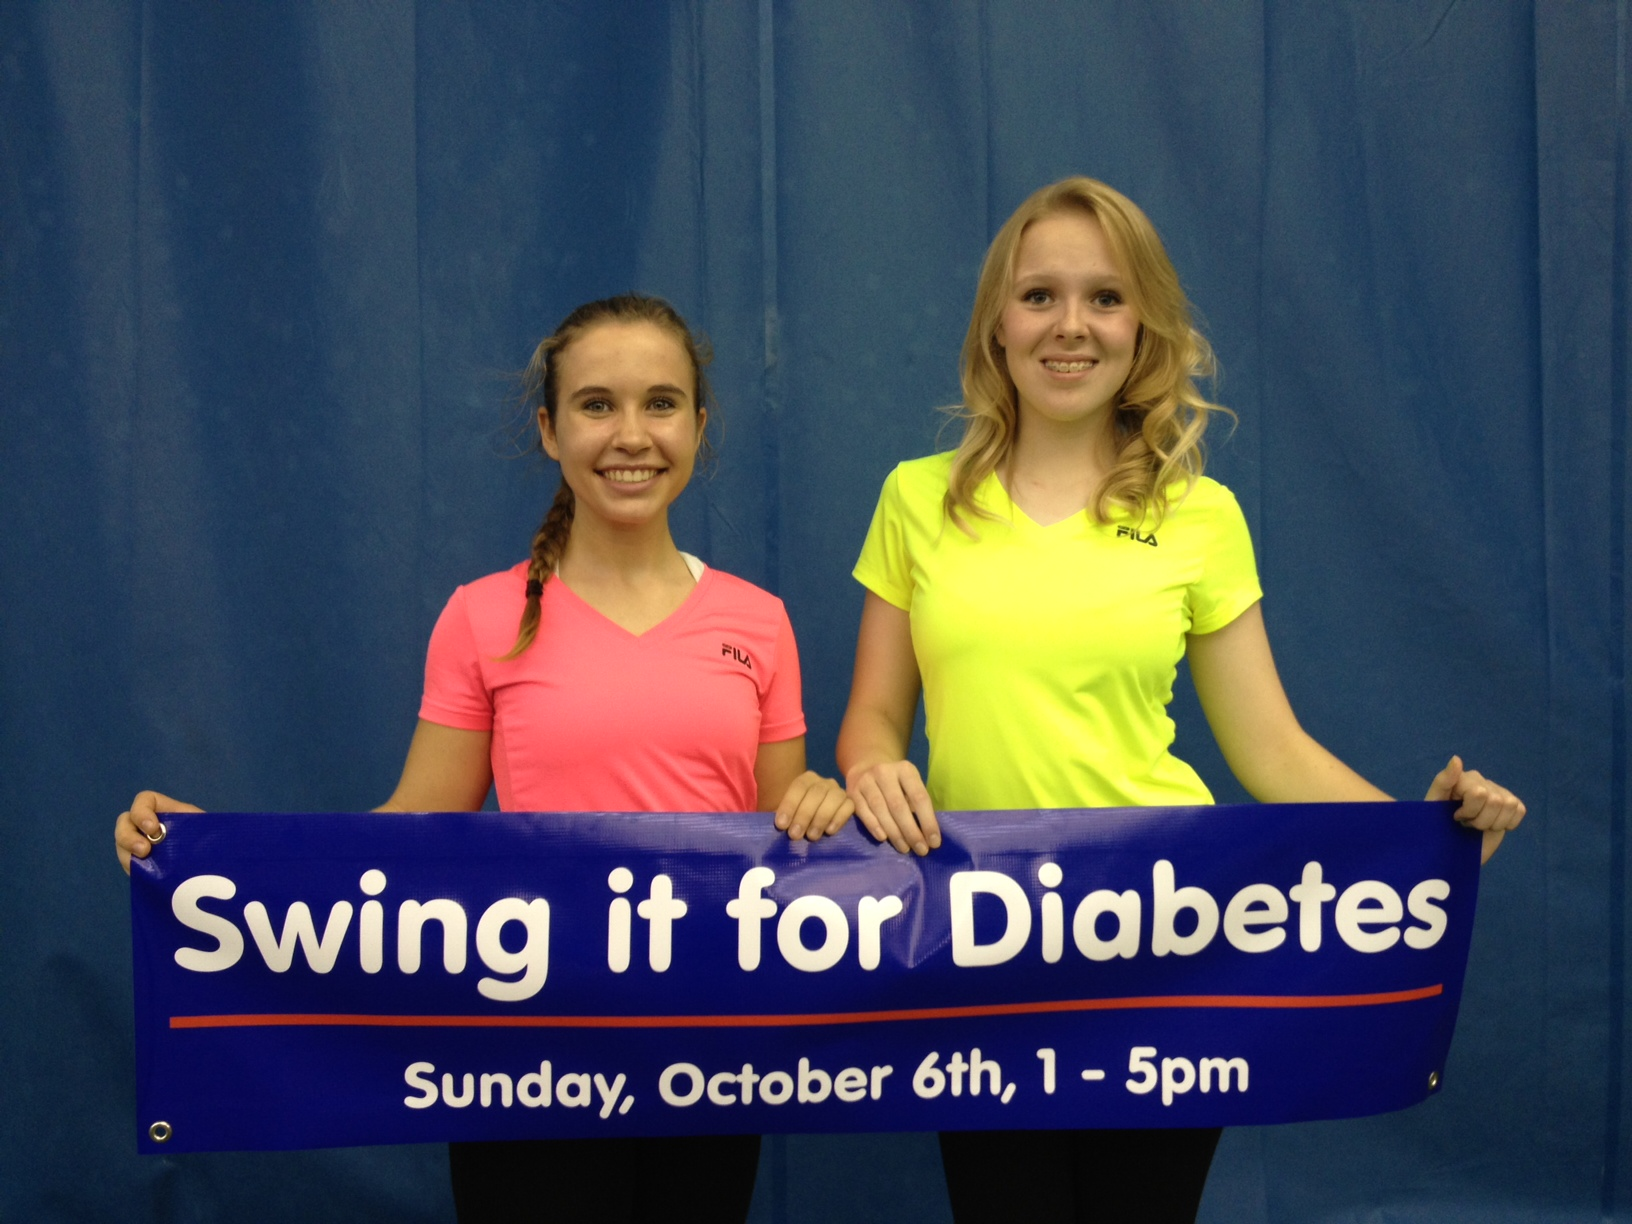 Carmel High School juniors Sophia Gould and Vivian Heerens turned their passion for volunteerism into helping loved ones with diabetes. They organized the fundraiser Swing It for Diabetes.